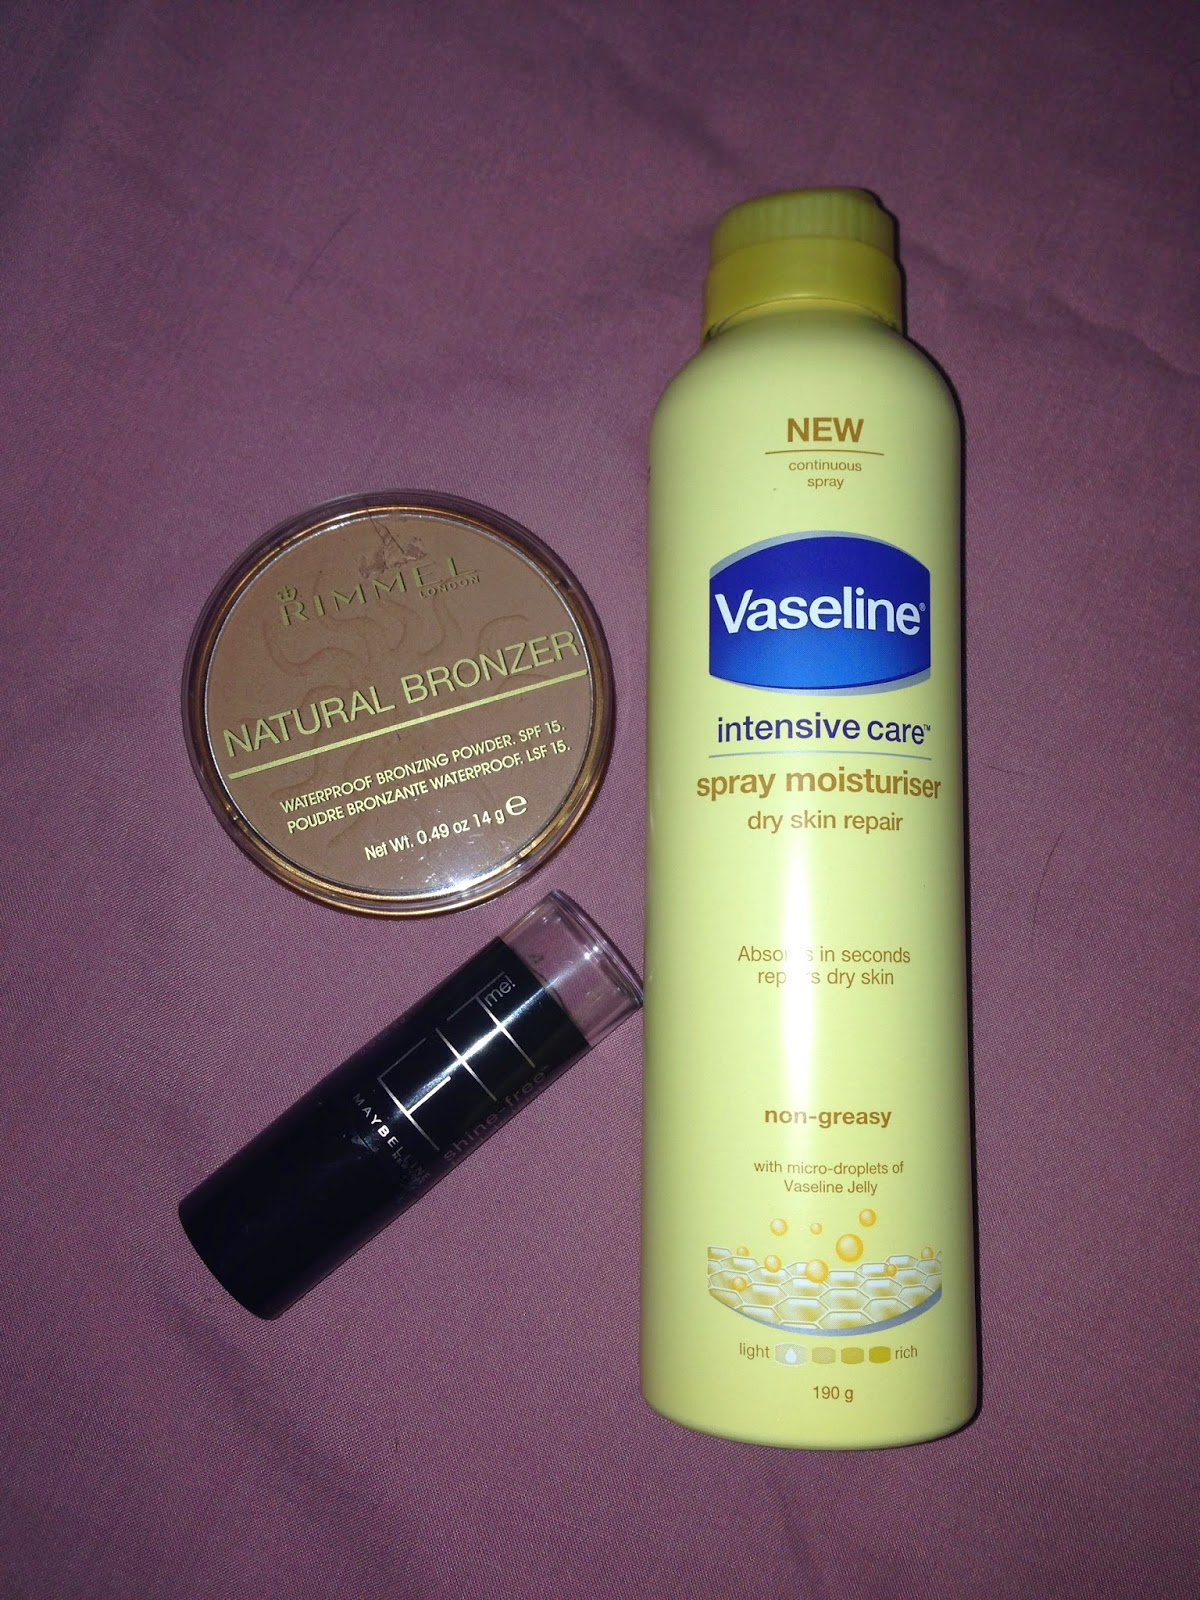 Maybelline Fit Me Shine-Free Foundation Stick in shade 235 Pure Beige, Rimmel London Natural Bronzer in Sun Bronze & Vaseline Intensive Care Spray Moisturiser for Dry Skin Repair